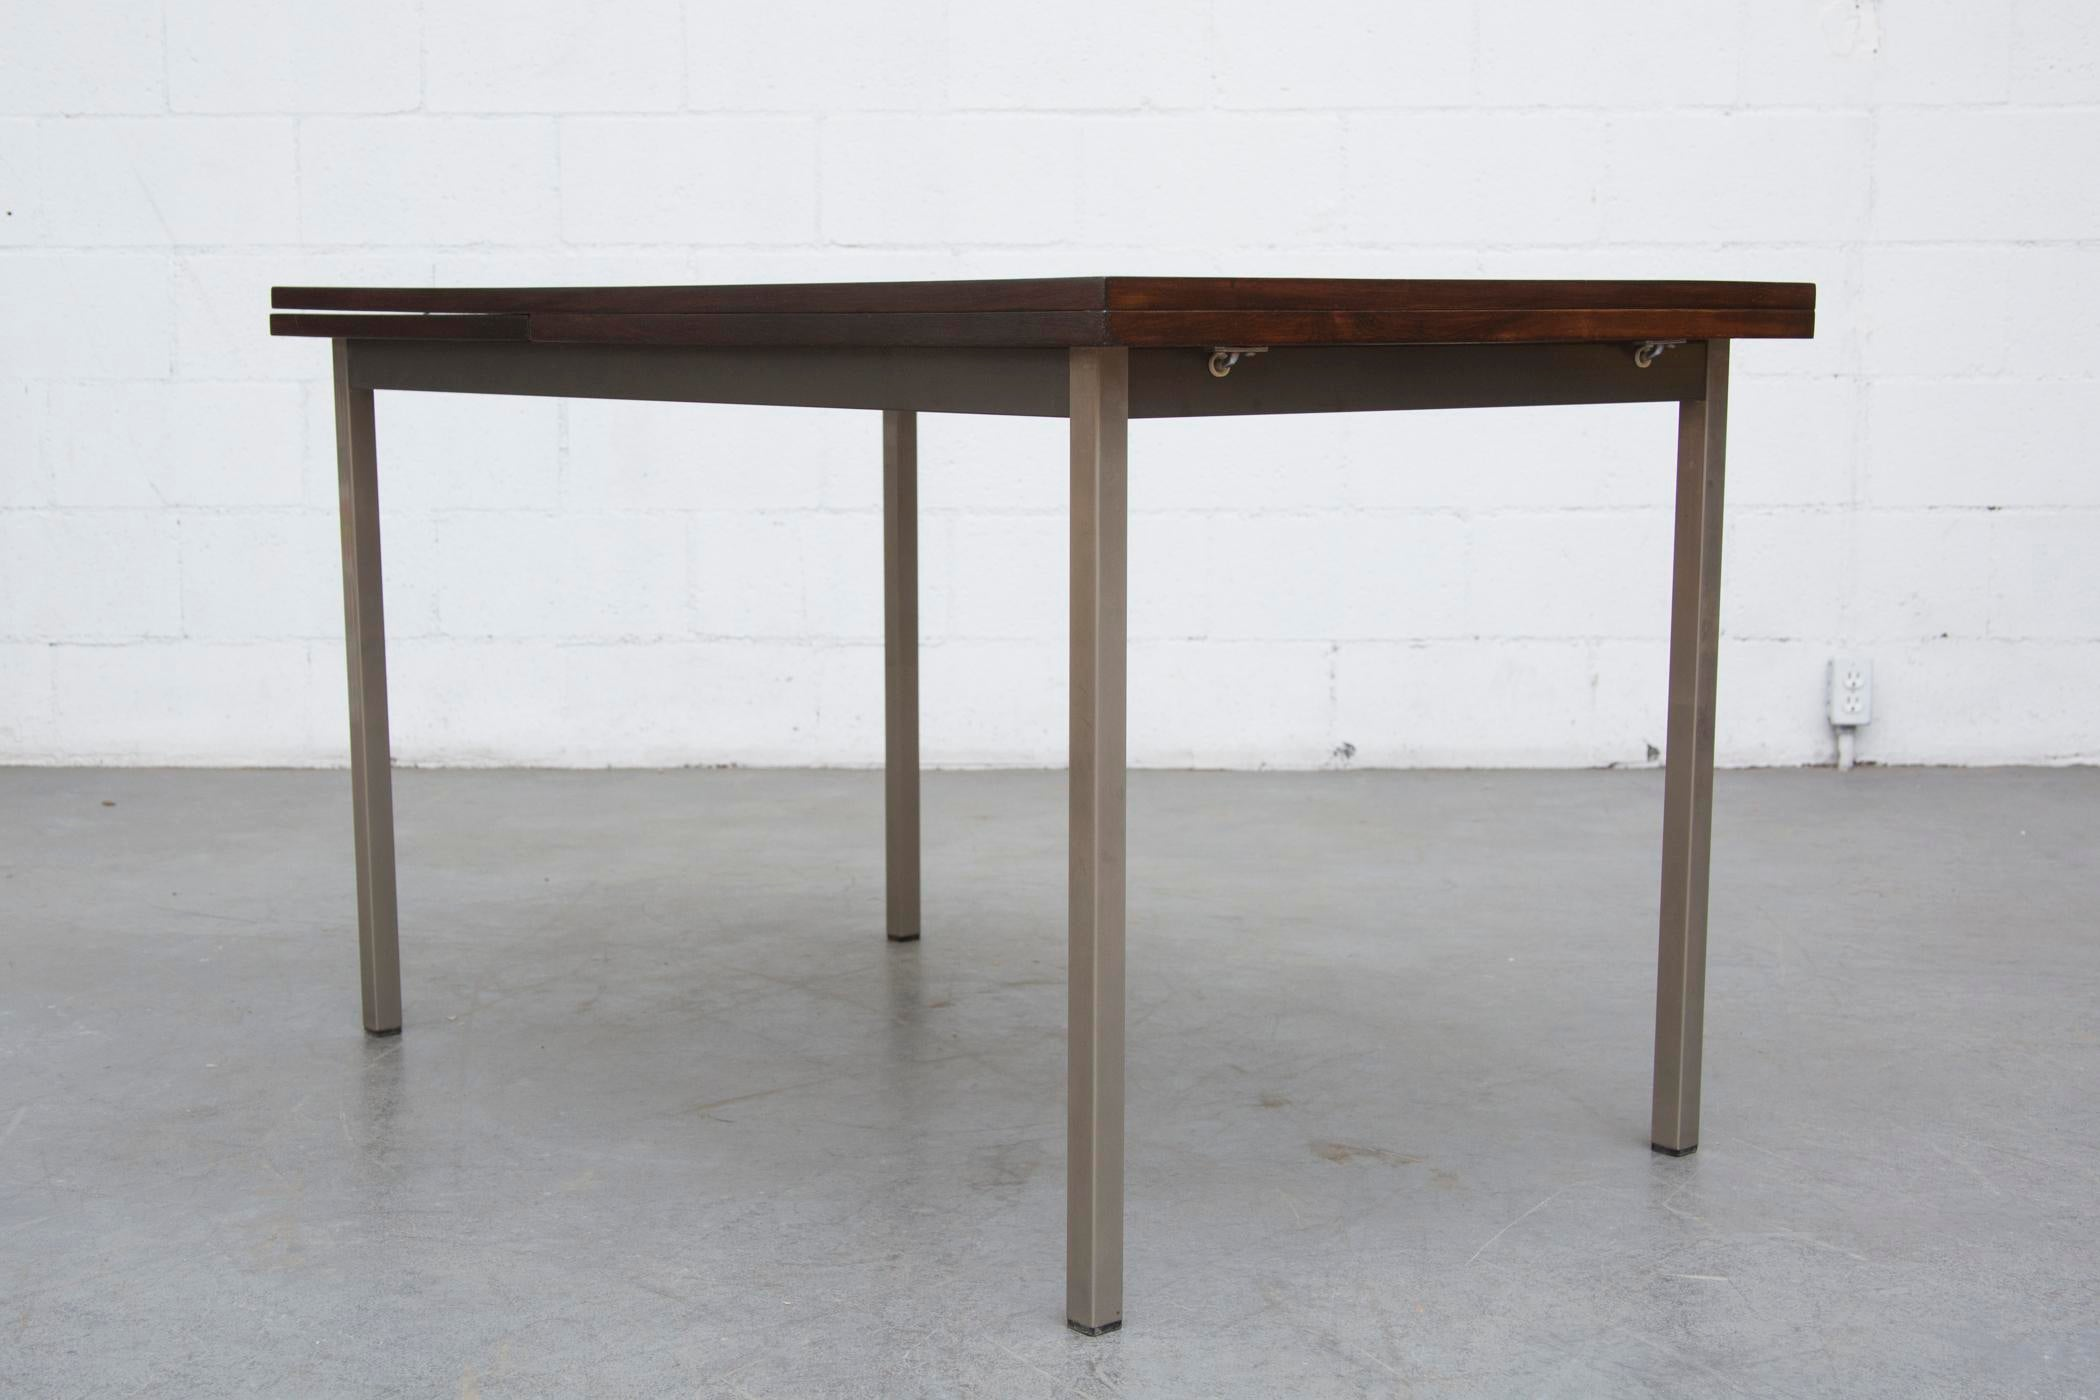 Rosewood Industrial Style Dining Table Chairish : 6b659c07 0d71 4424 96f3 50f98073c663aspectfitampwidth640ampheight640 from www.chairish.com size 640 x 640 jpeg 25kB